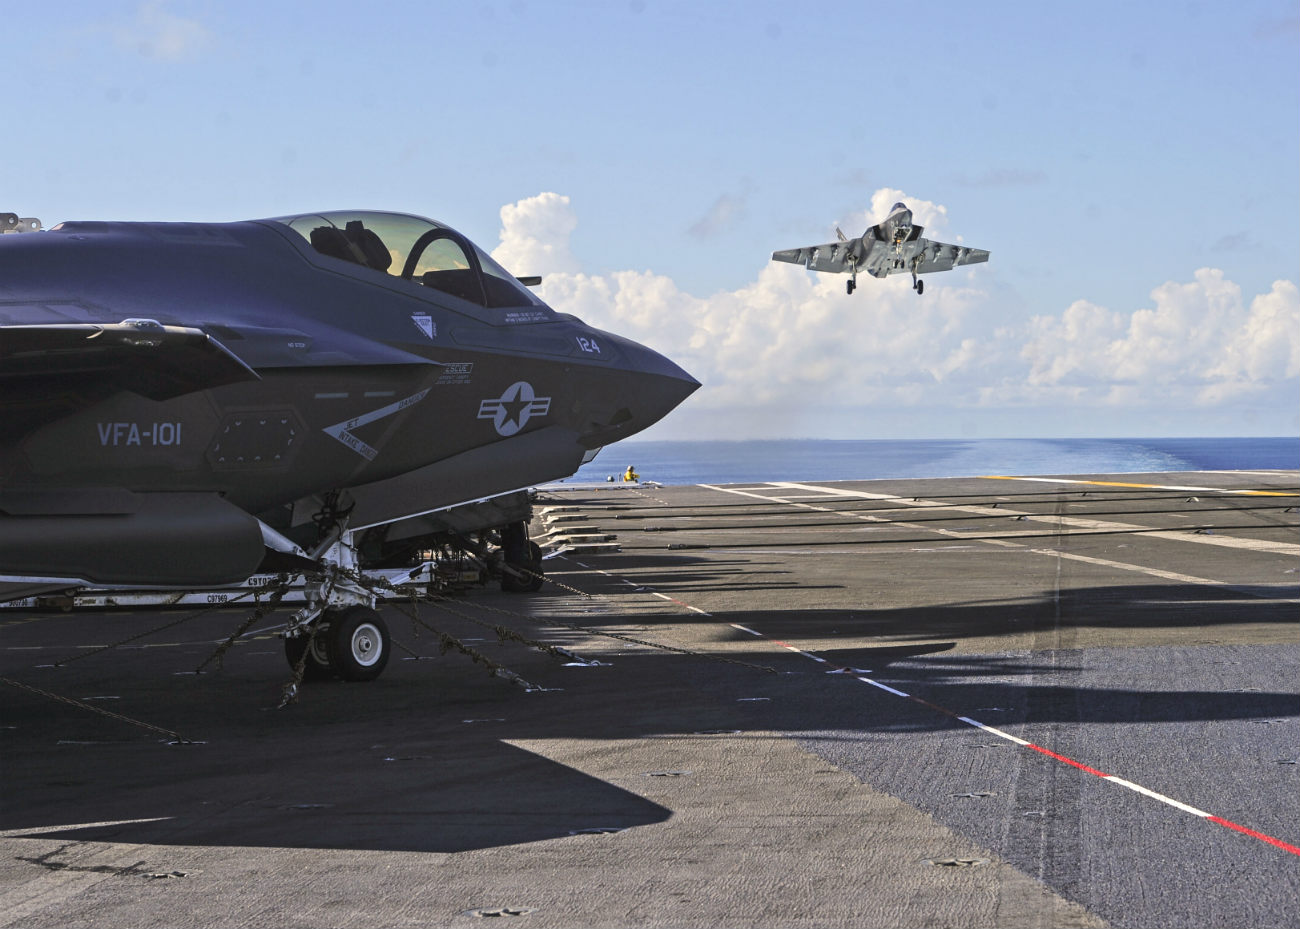 F-35s On Carrier landing